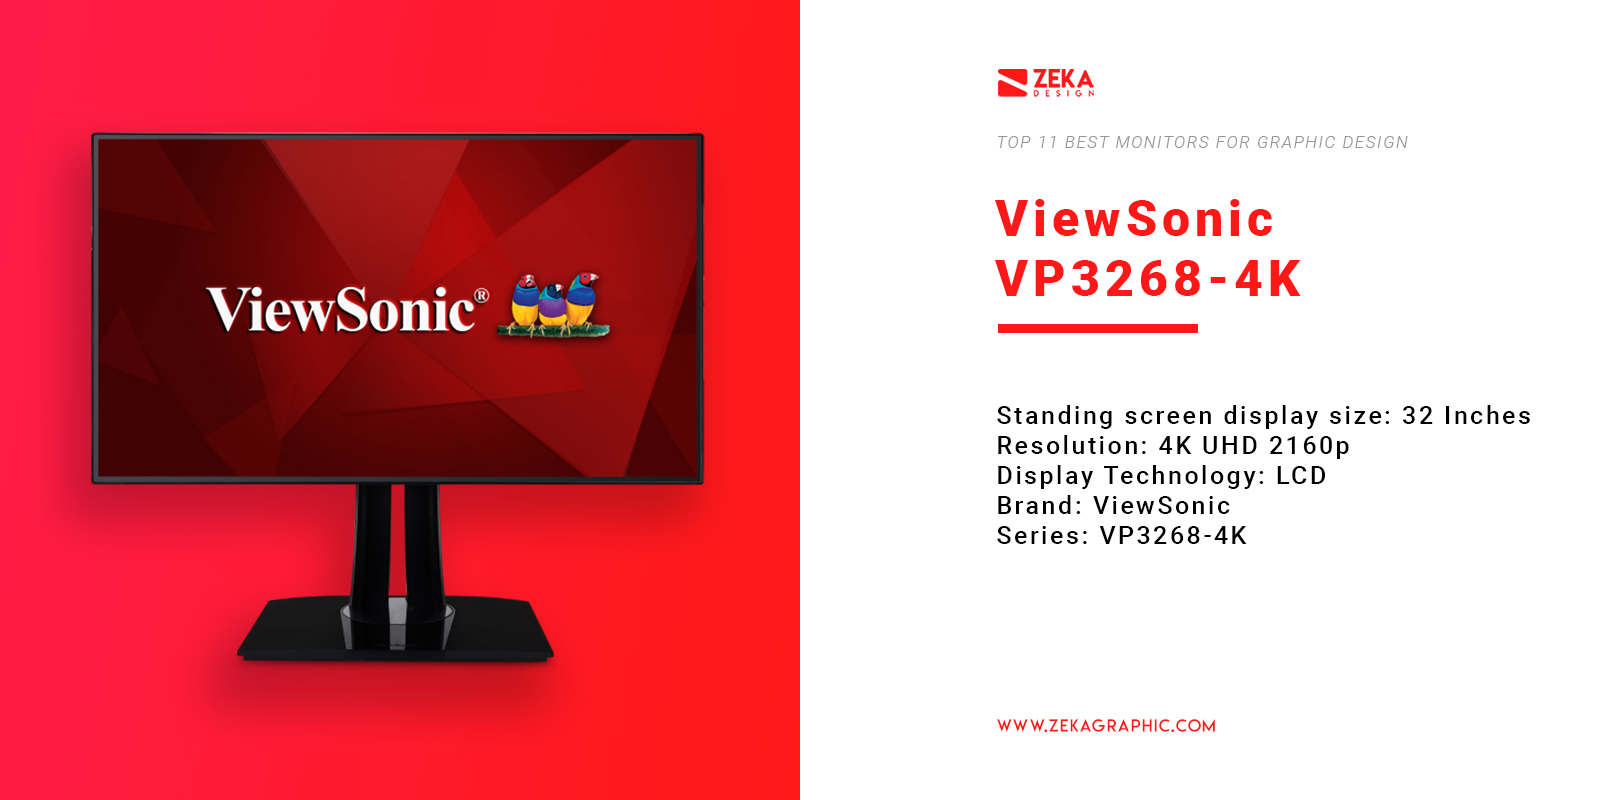 ViewSonic VP3268-4K Monitor for Graphic Design